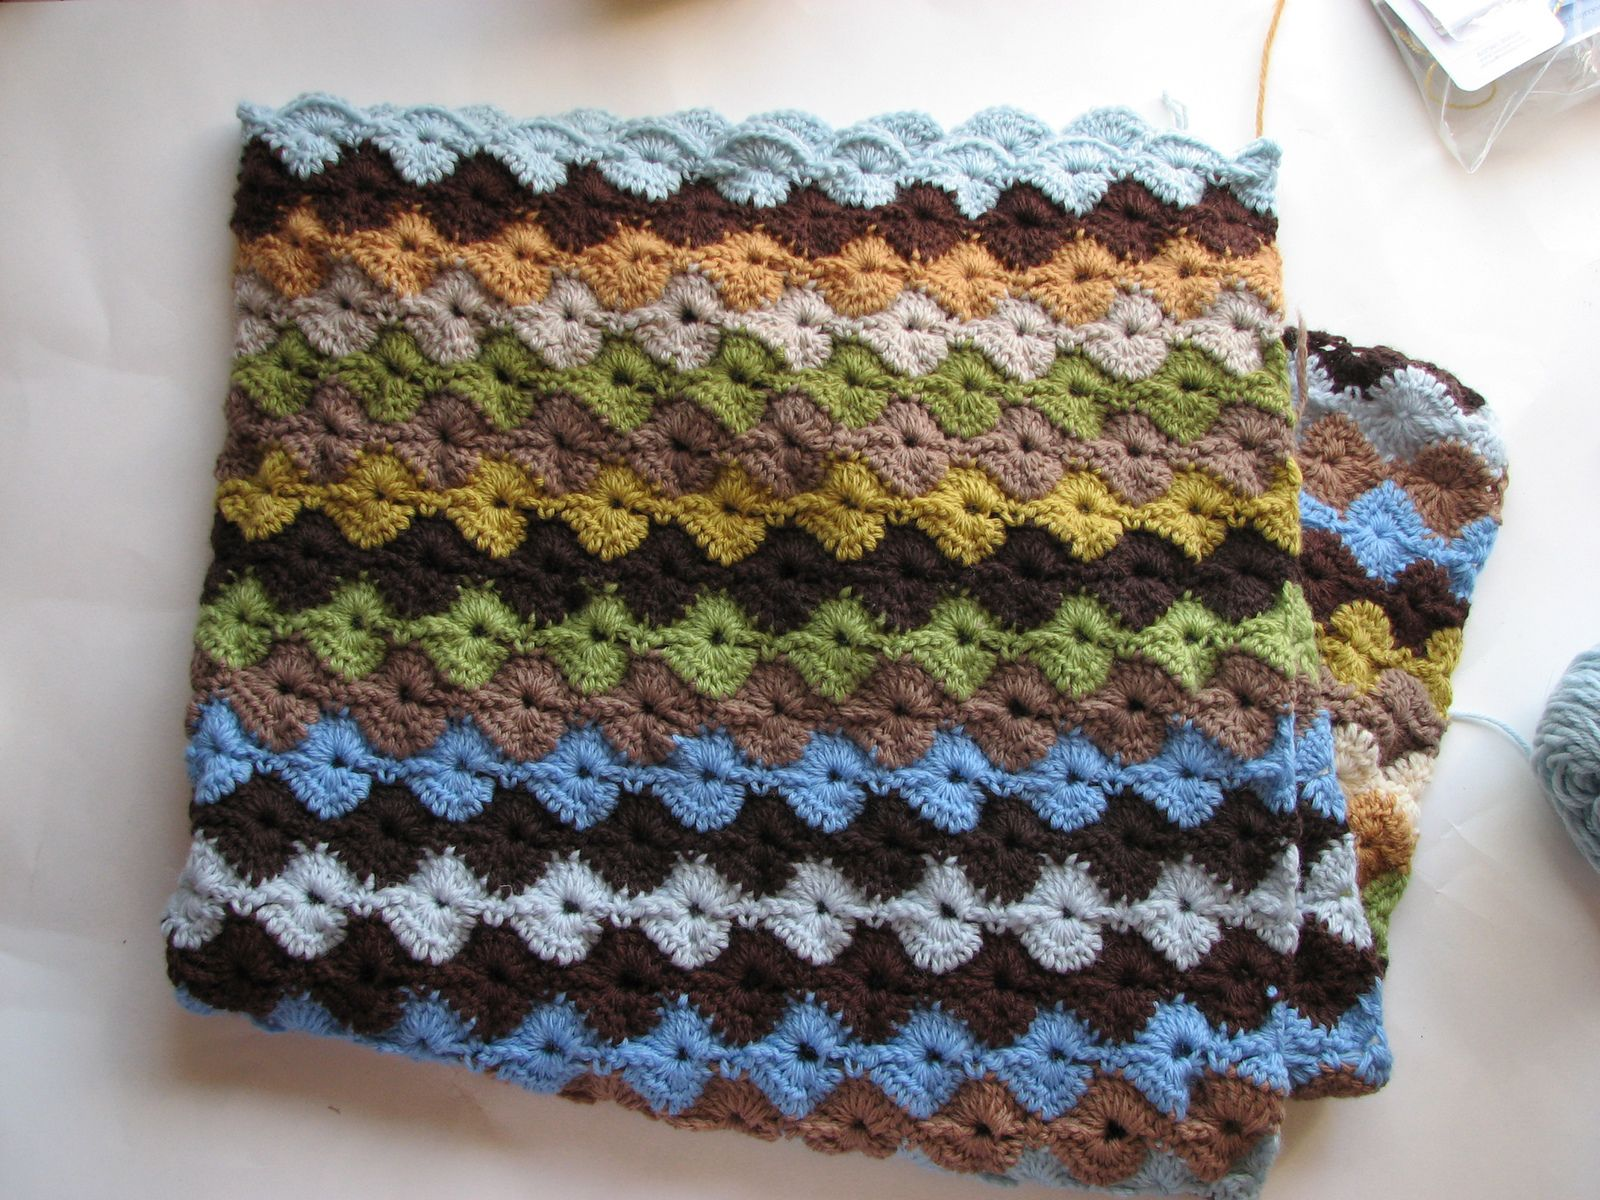 Ravelry: Star Shell Afghan pattern by Project Linus | Afghan ...